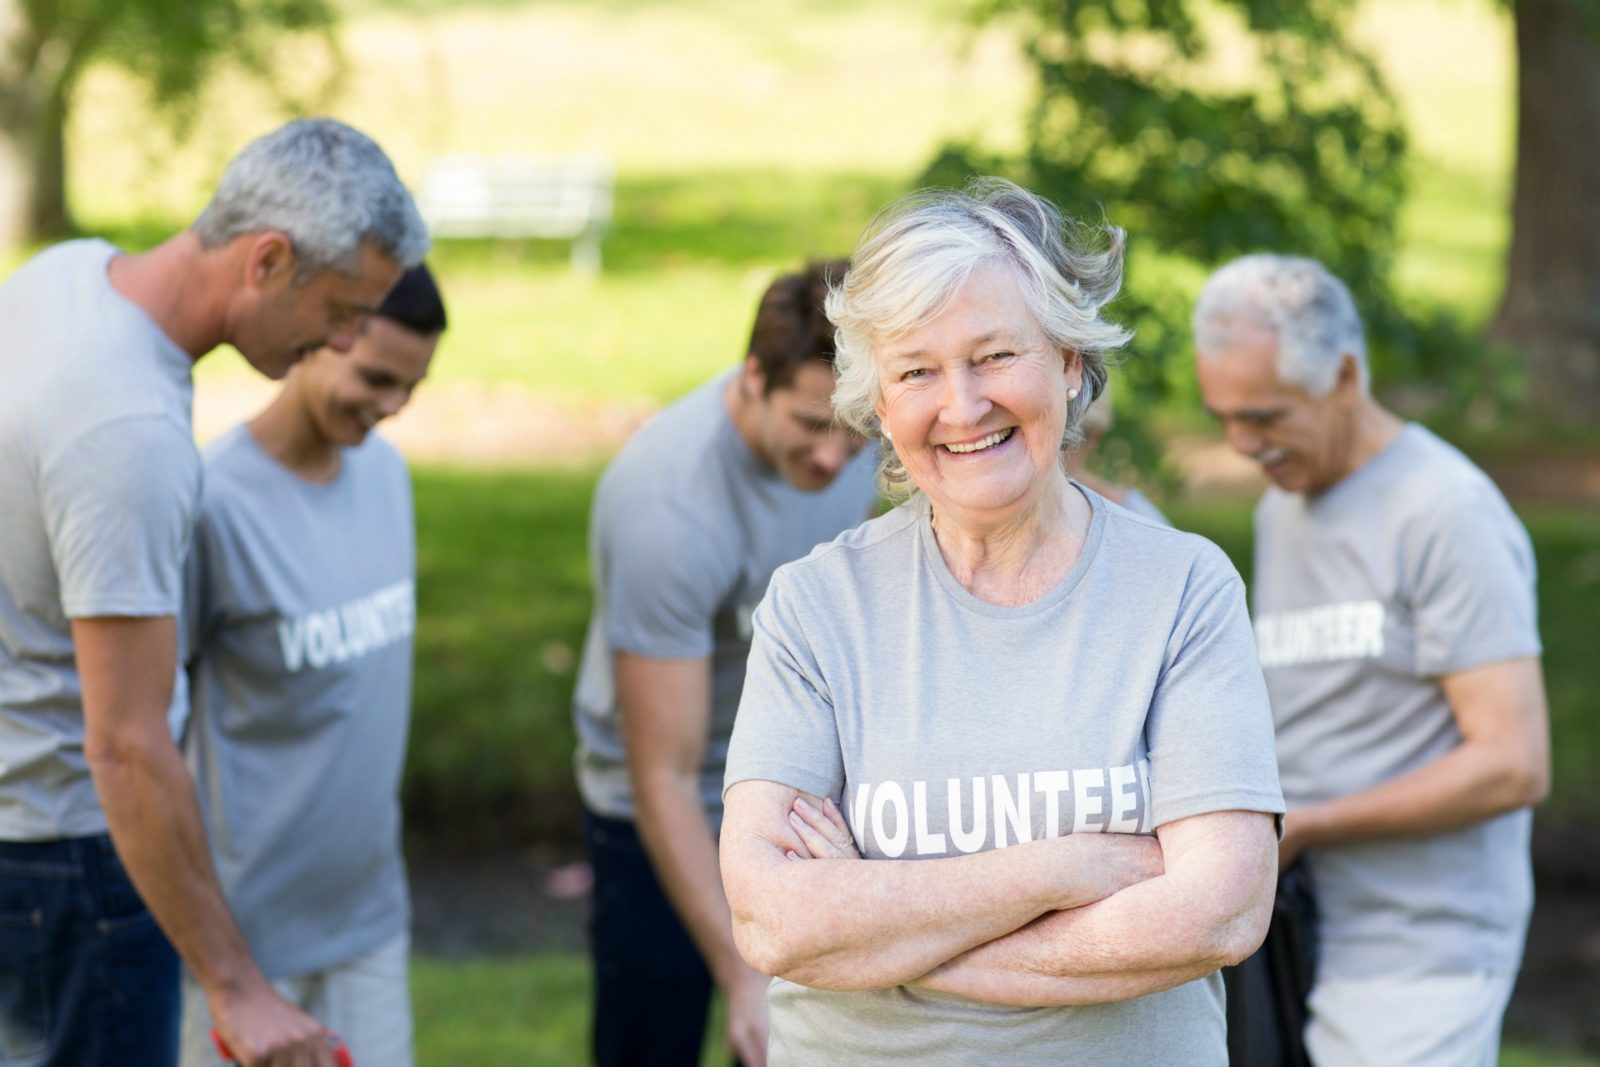 Volunteering is a great way to use skills in retirement that you did in your working life.